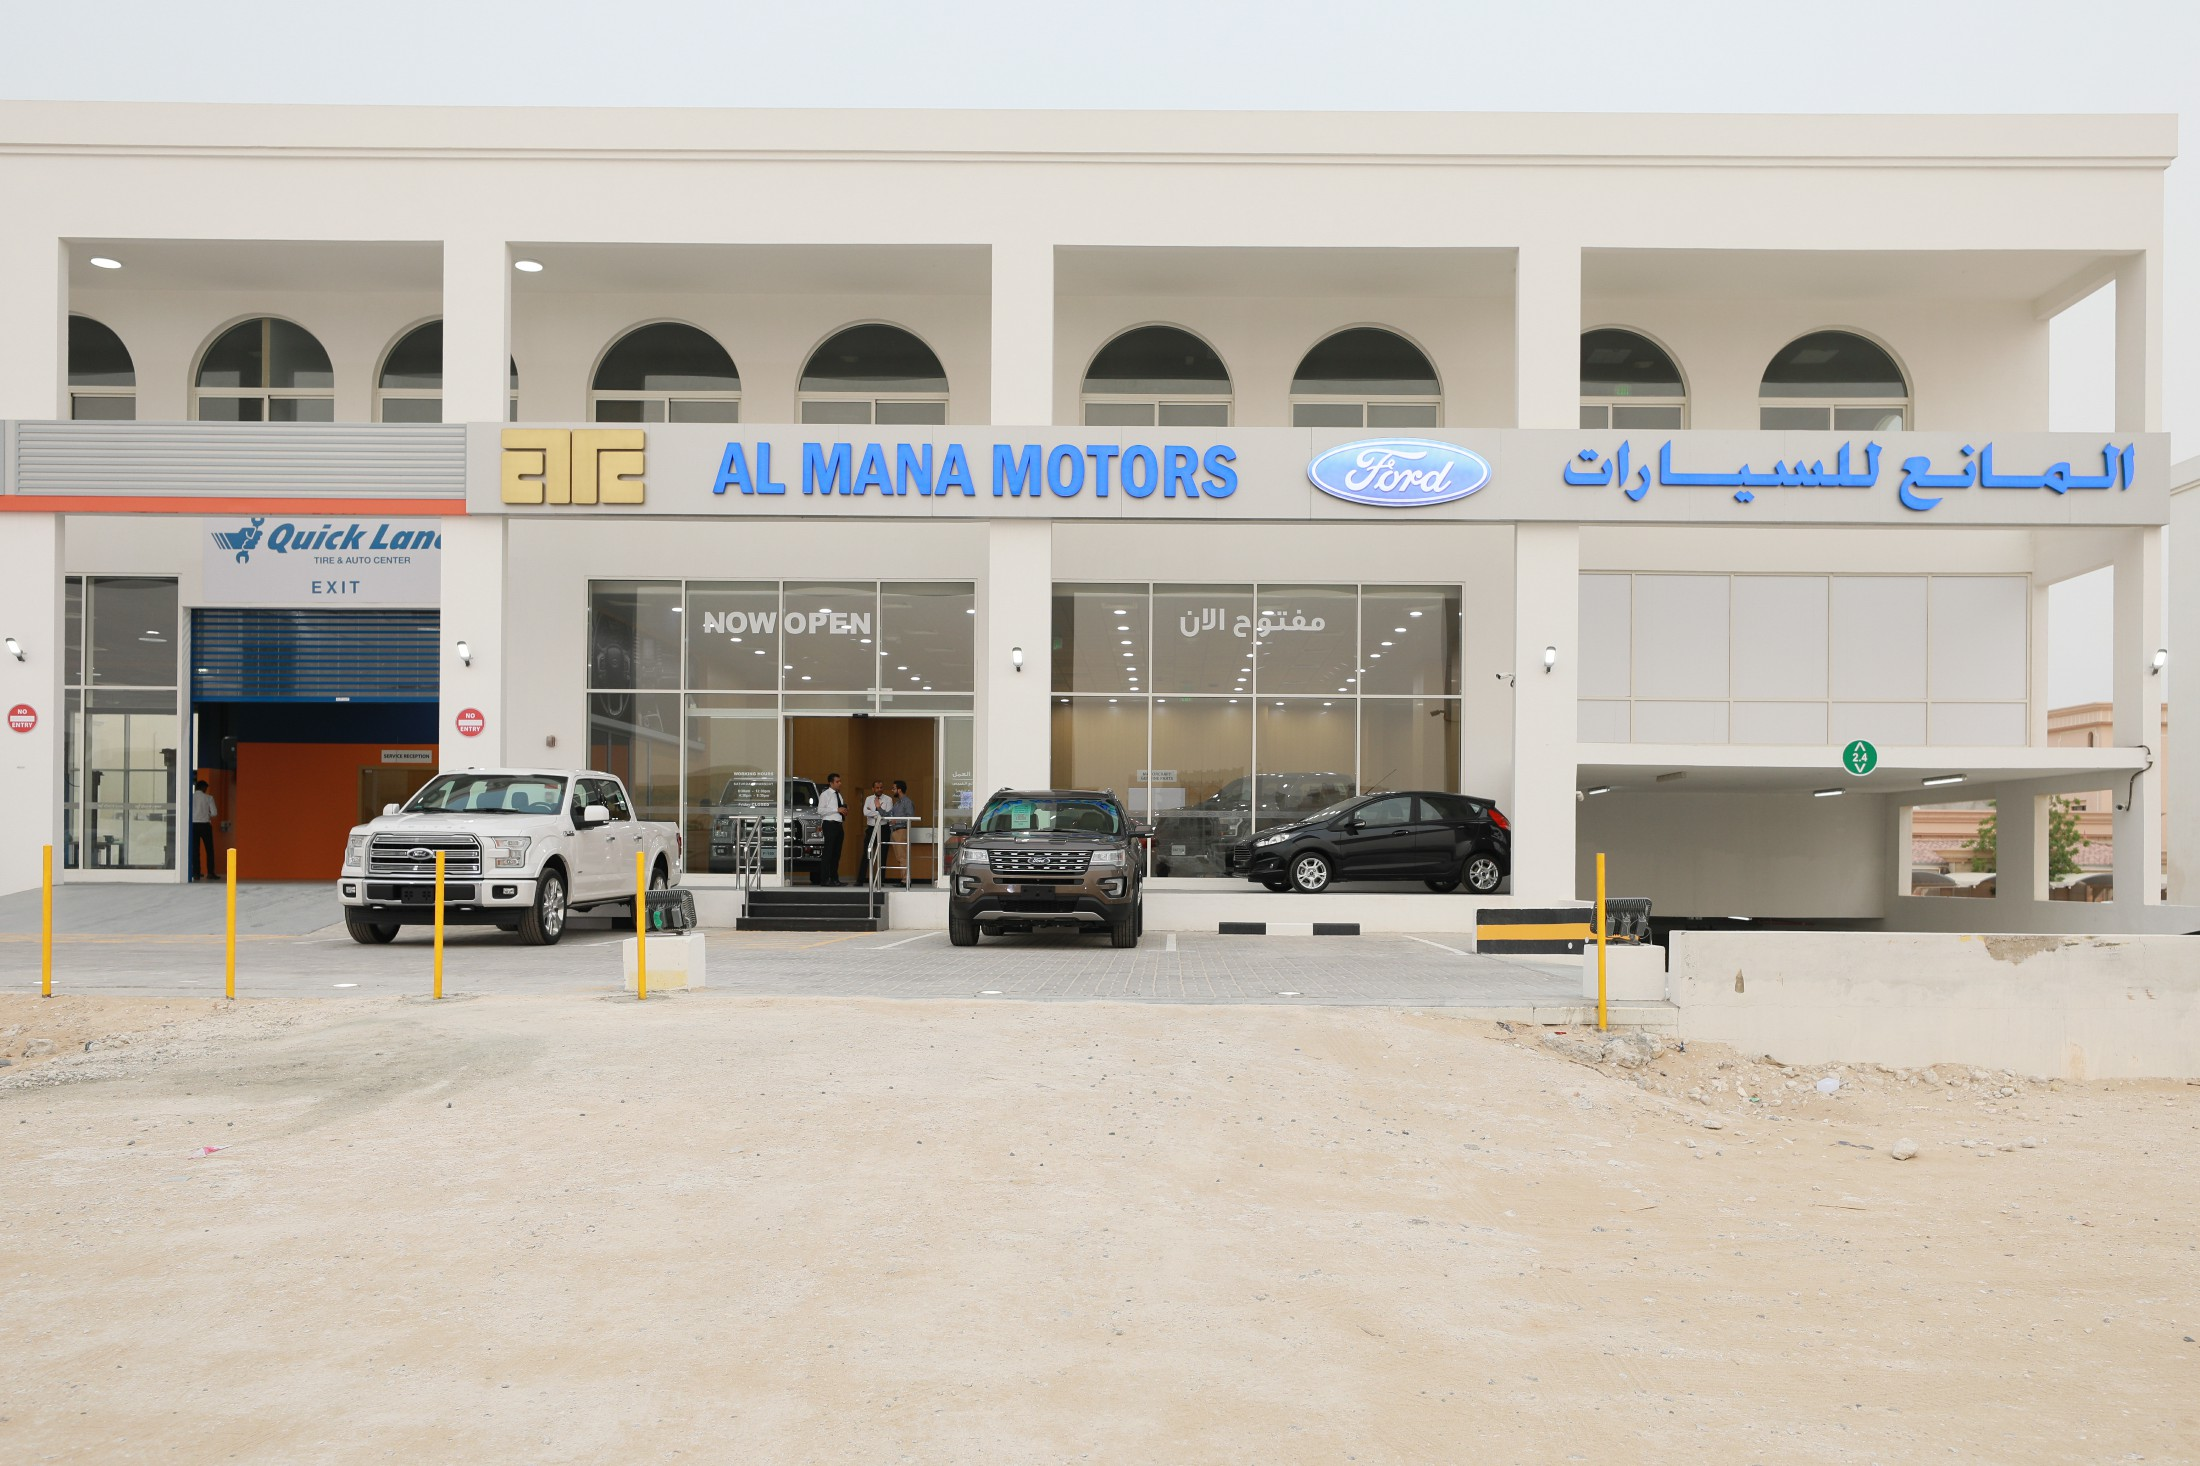 Almana Motors Company Launches Ford New Showroom And Quick Lane In